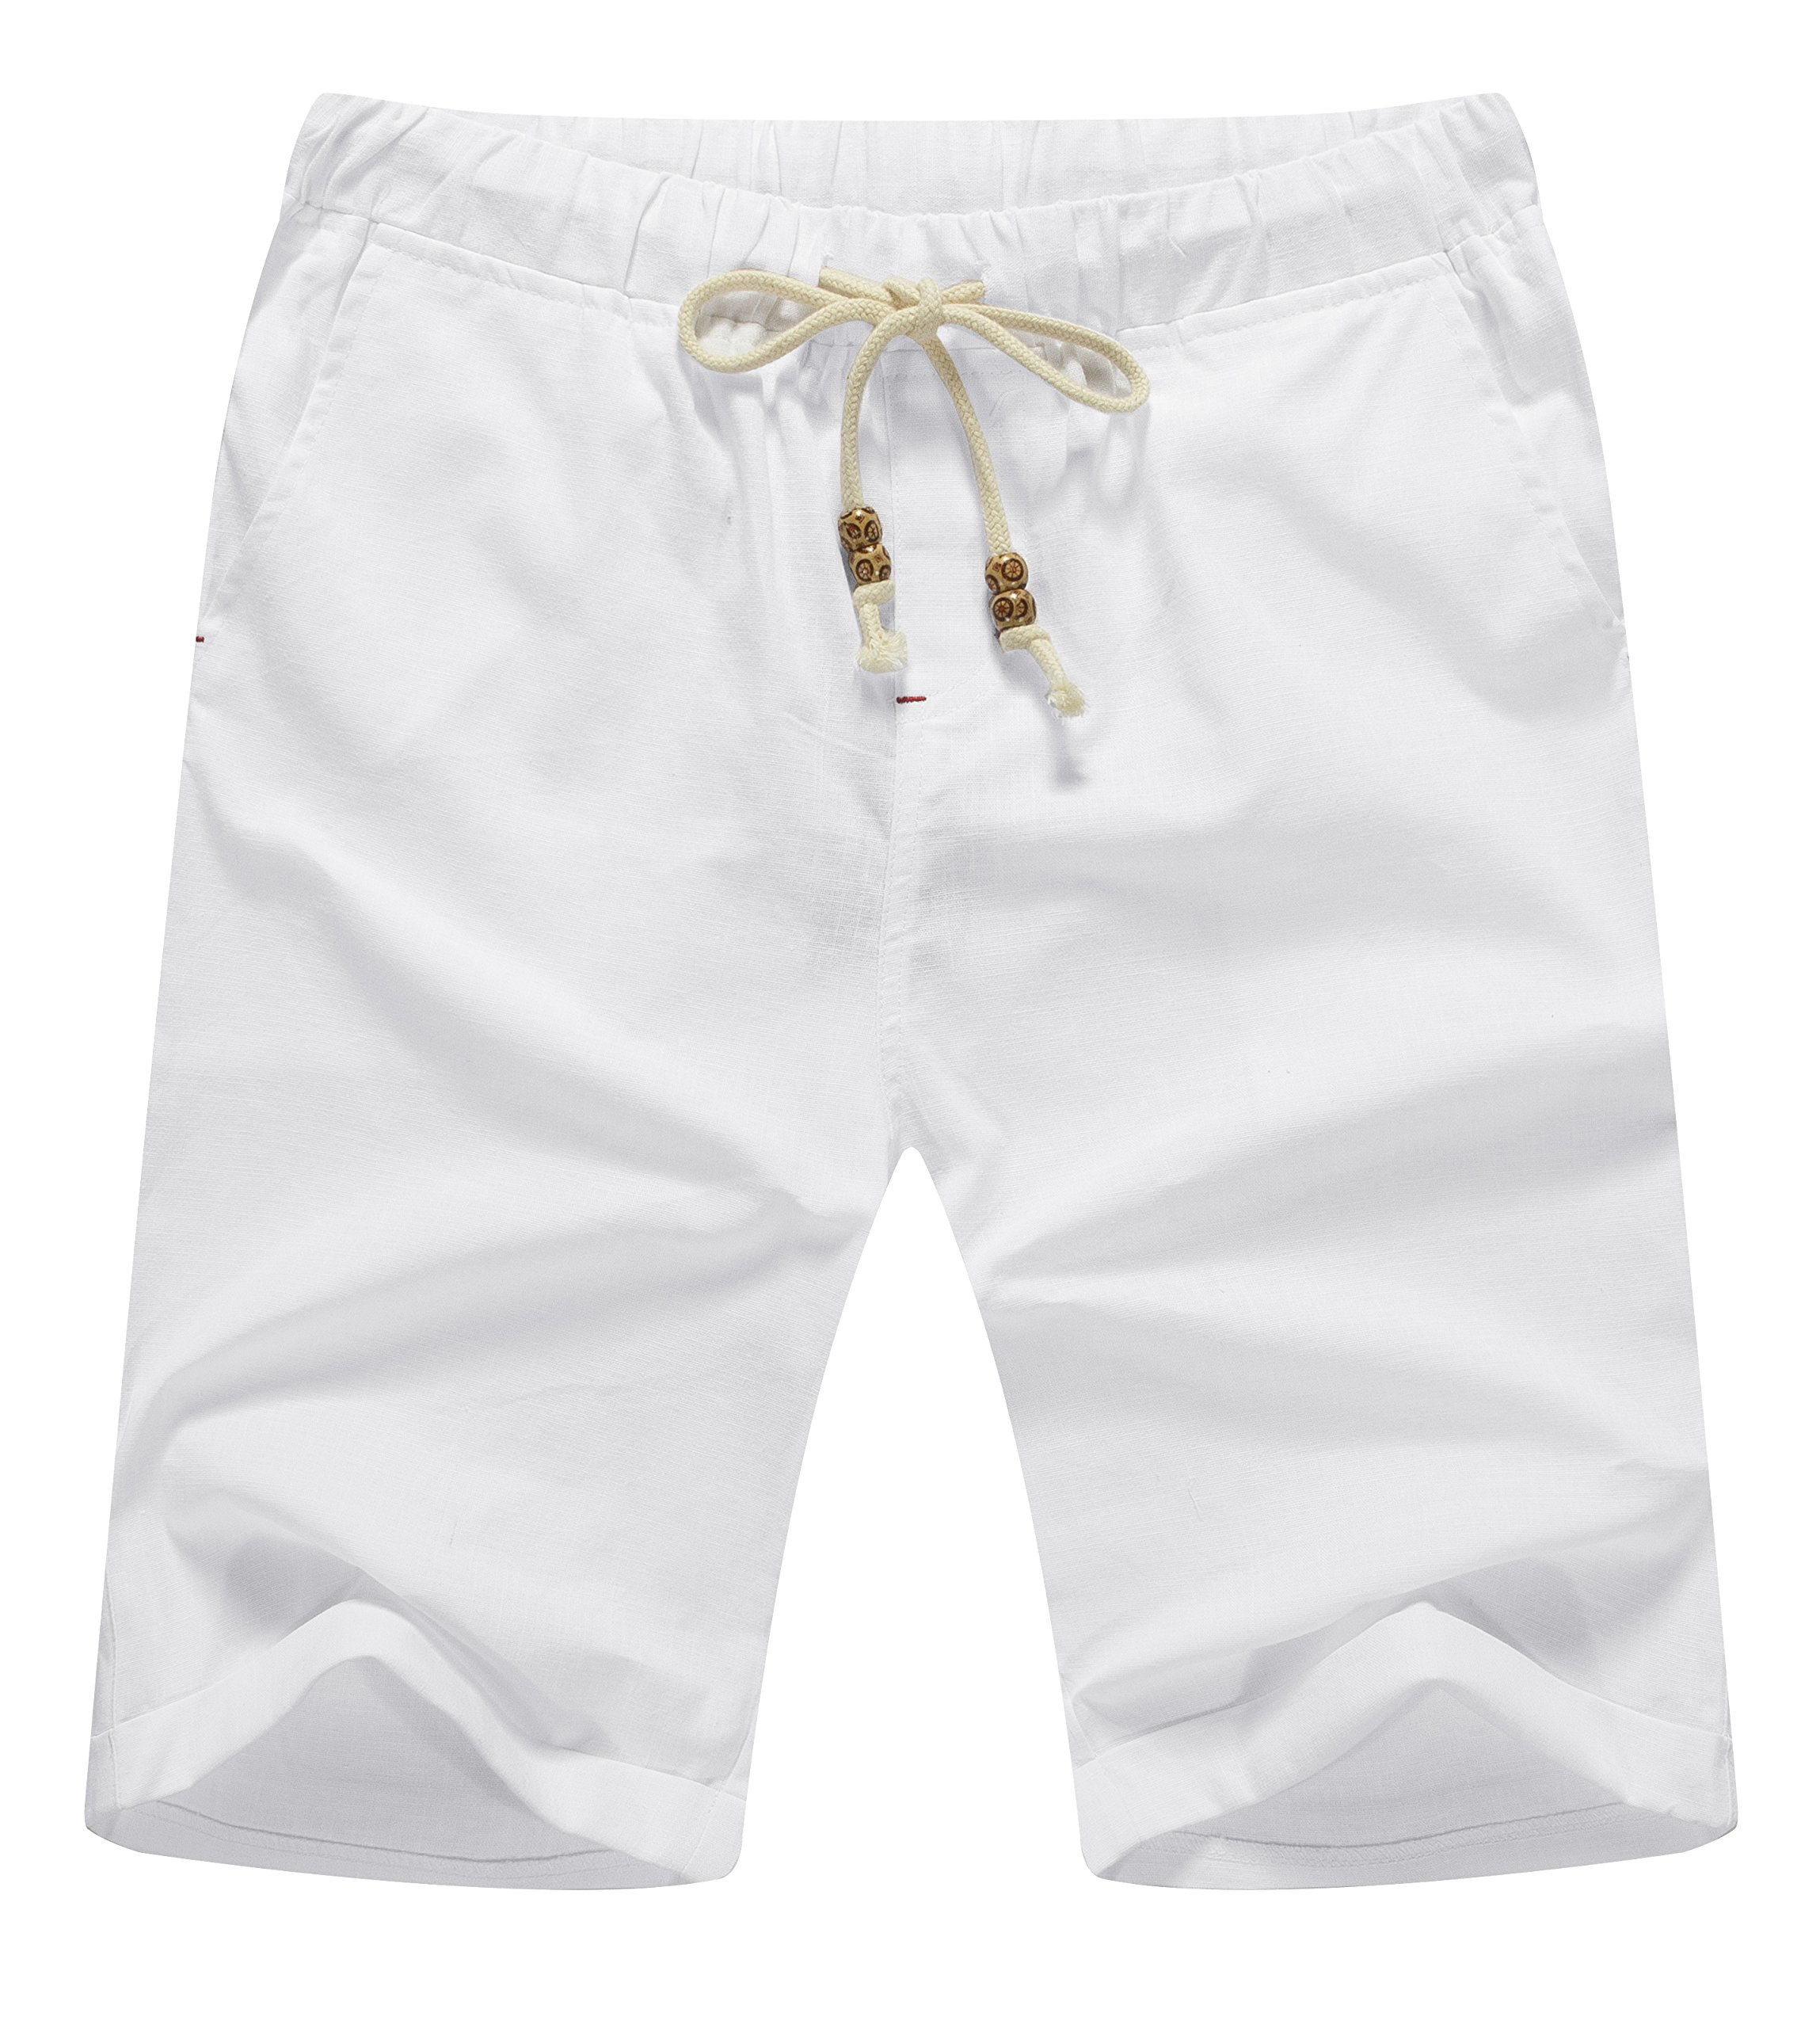 ZYFMAILY Men's Linen Casual Classic Fit Short Drawstring Summer Beach Shorts (M, White)